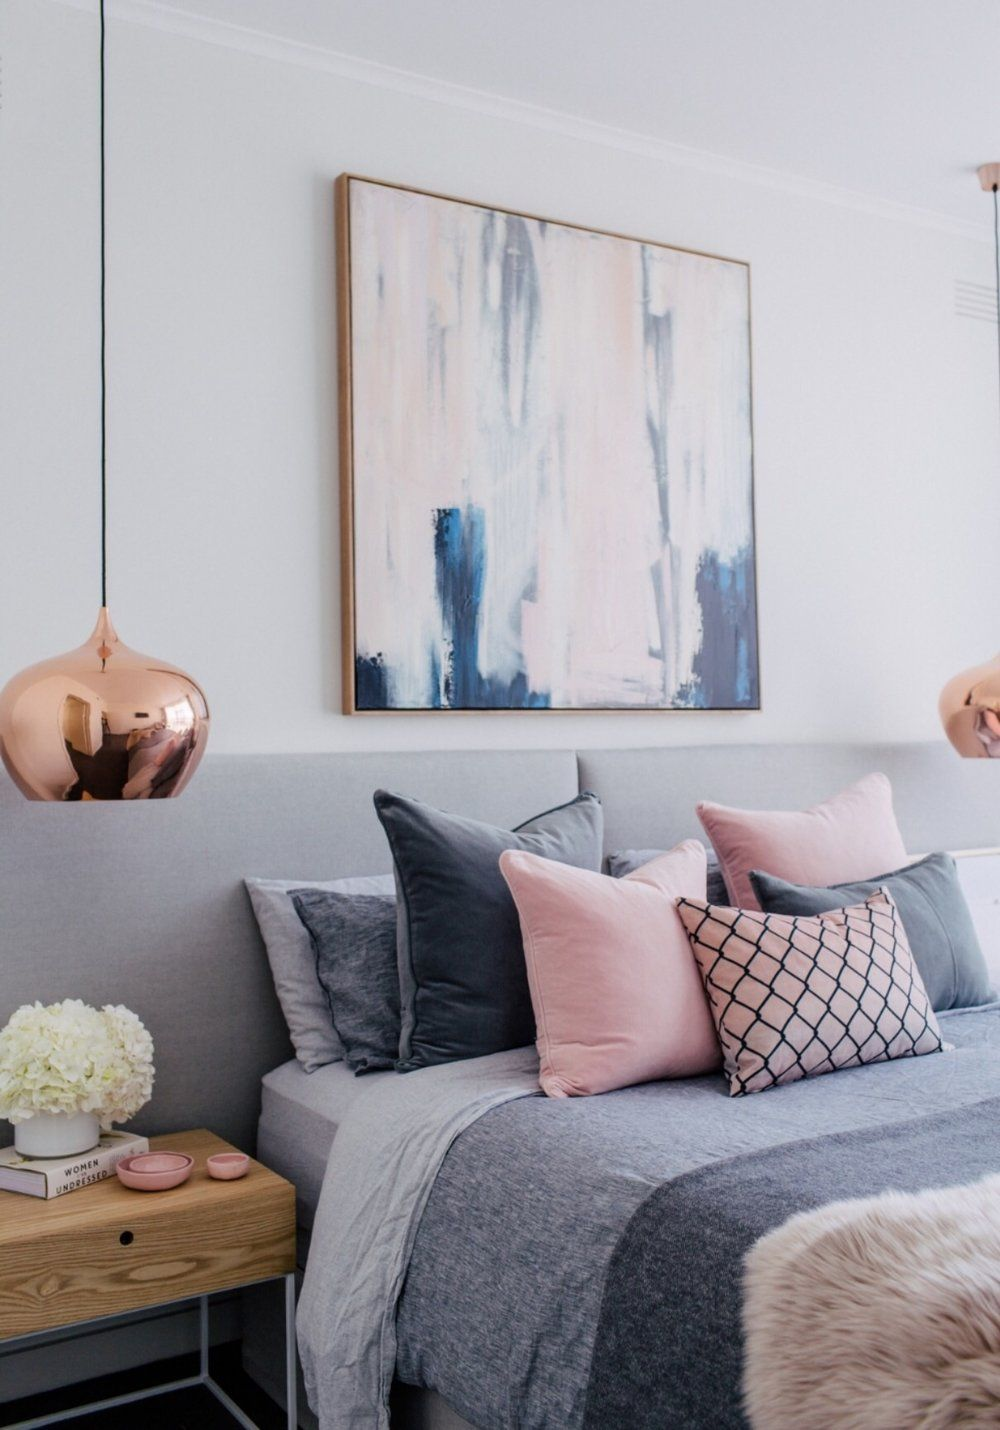 Merveilleux Bedroom Inspiration For A Great And Pink Blush Scheme With Copper, Textures  And Coloured Cushion In Grey, Pink And Pattern. Amazing Artwork Above The  Bed.